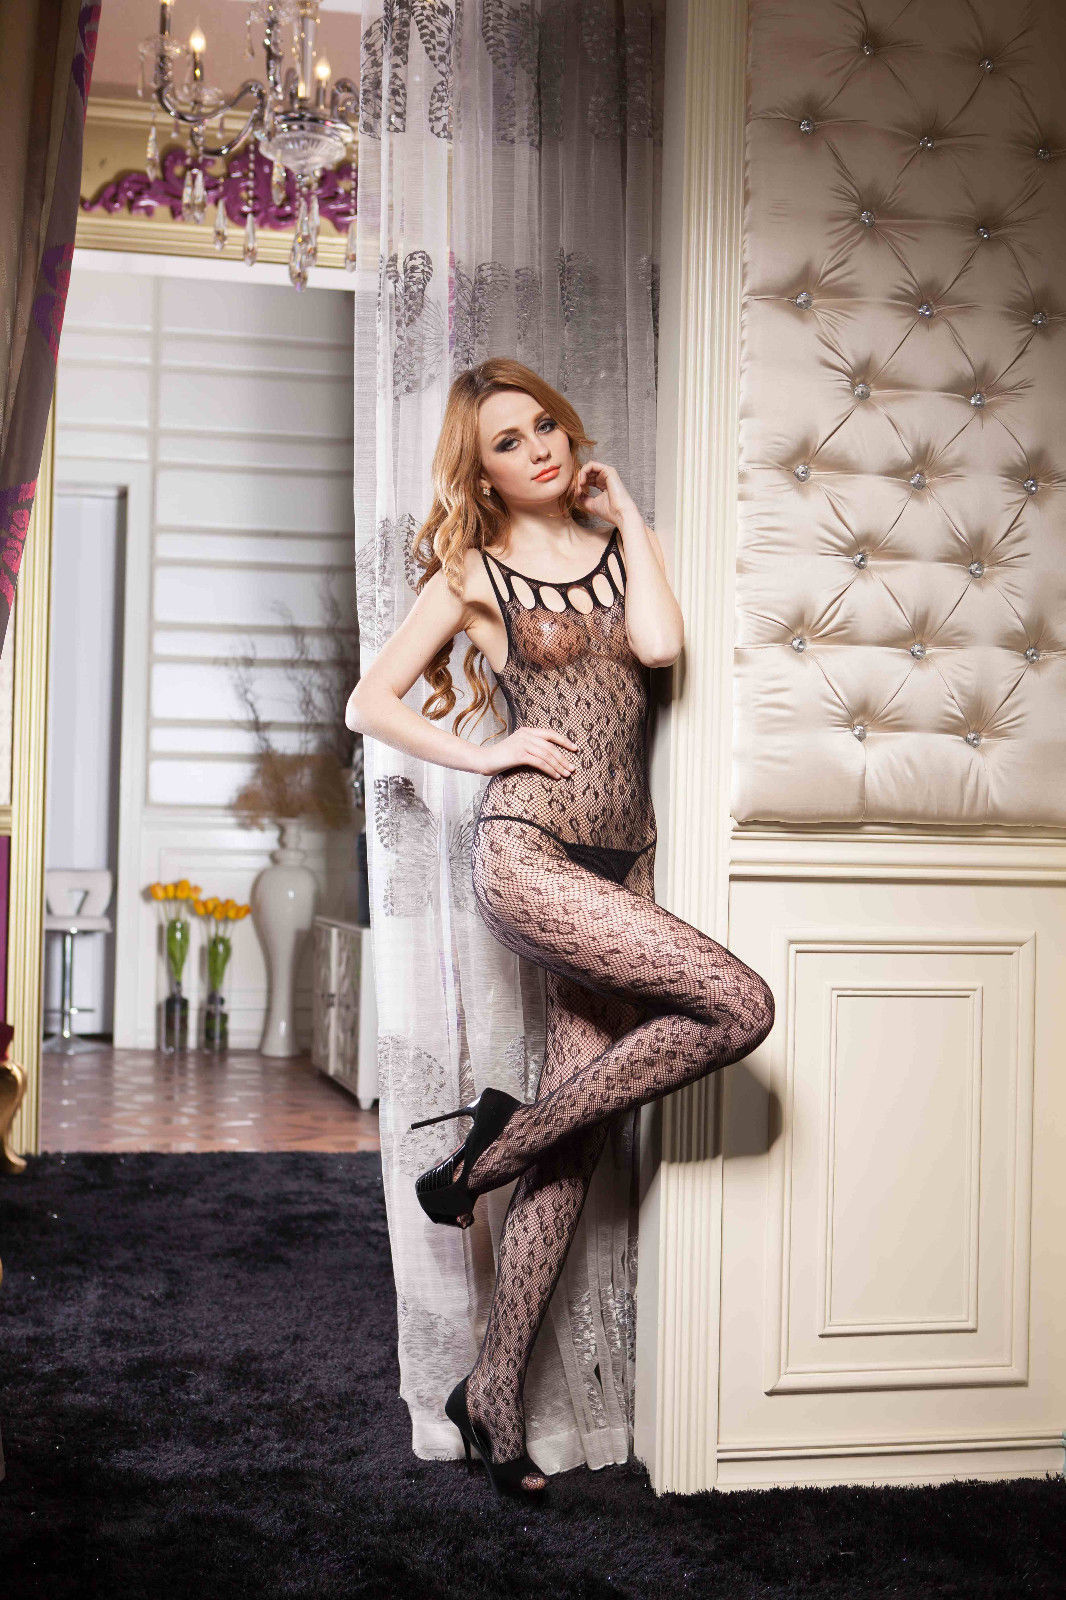 Fishnet Full Body Stocking - Free size - Different Styles